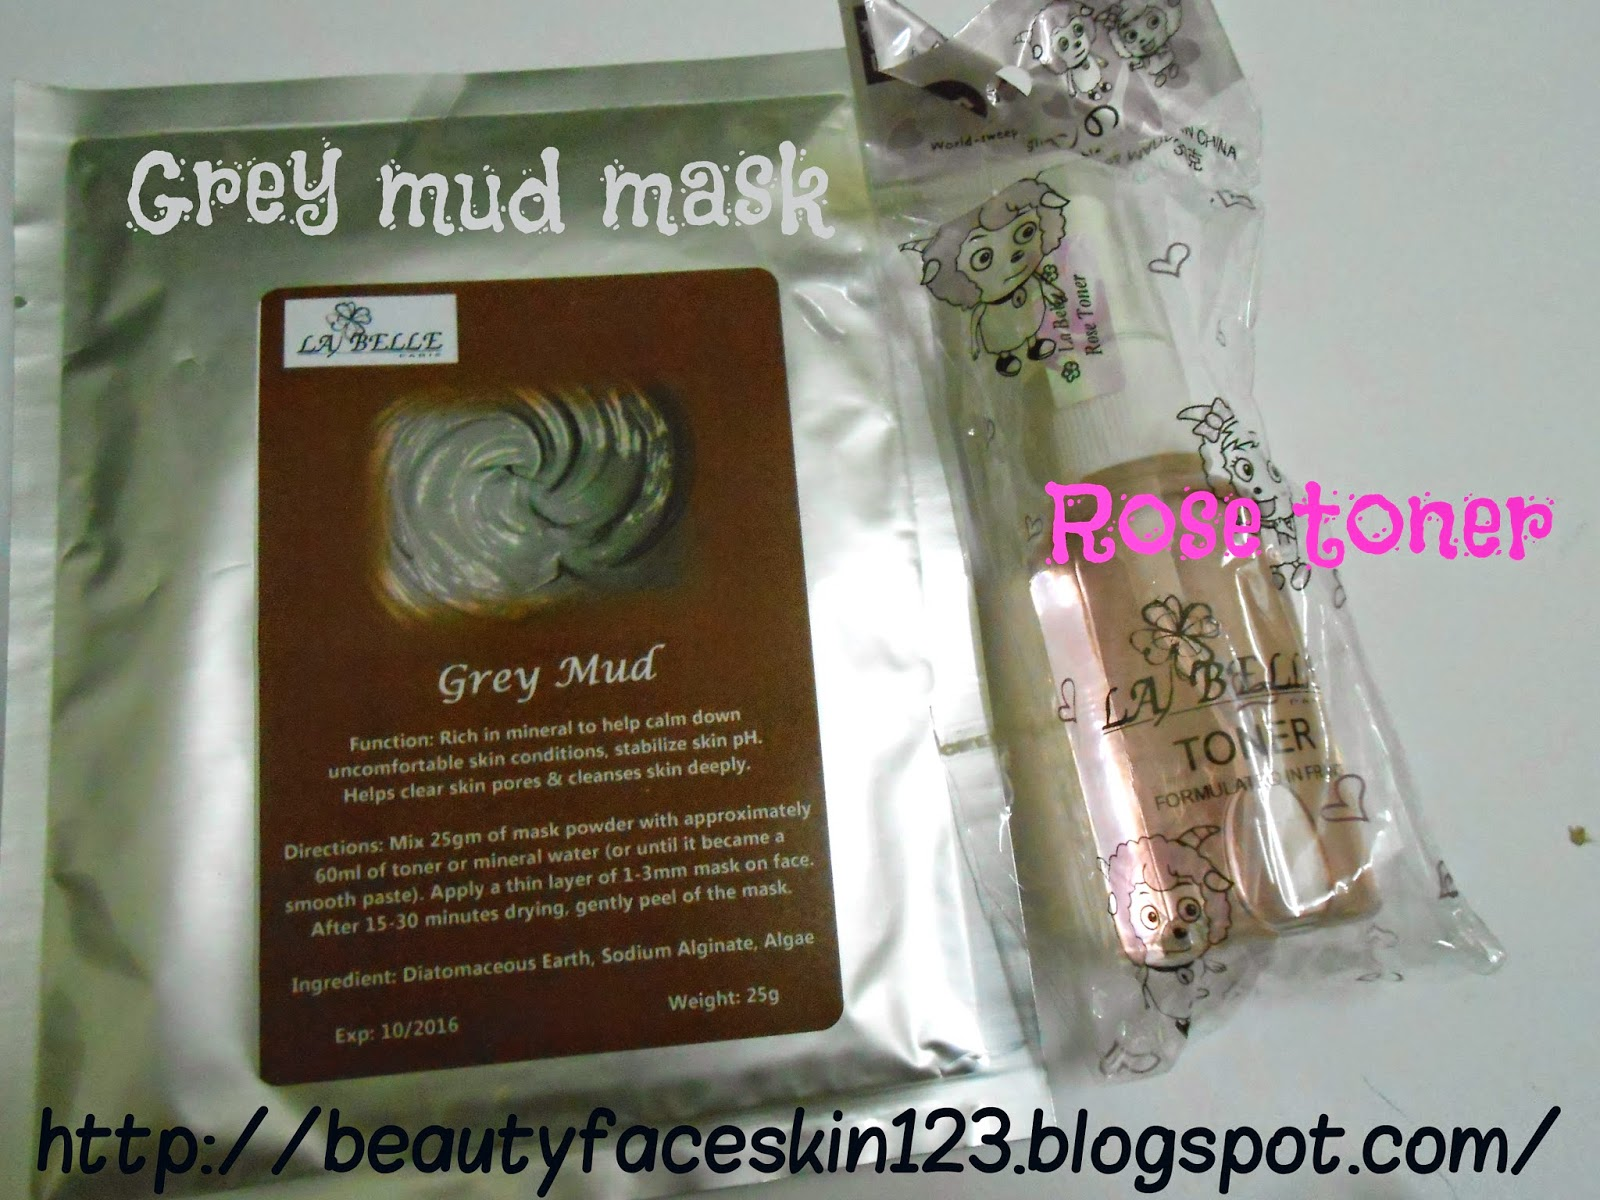 La Belle Grey mud powder mask